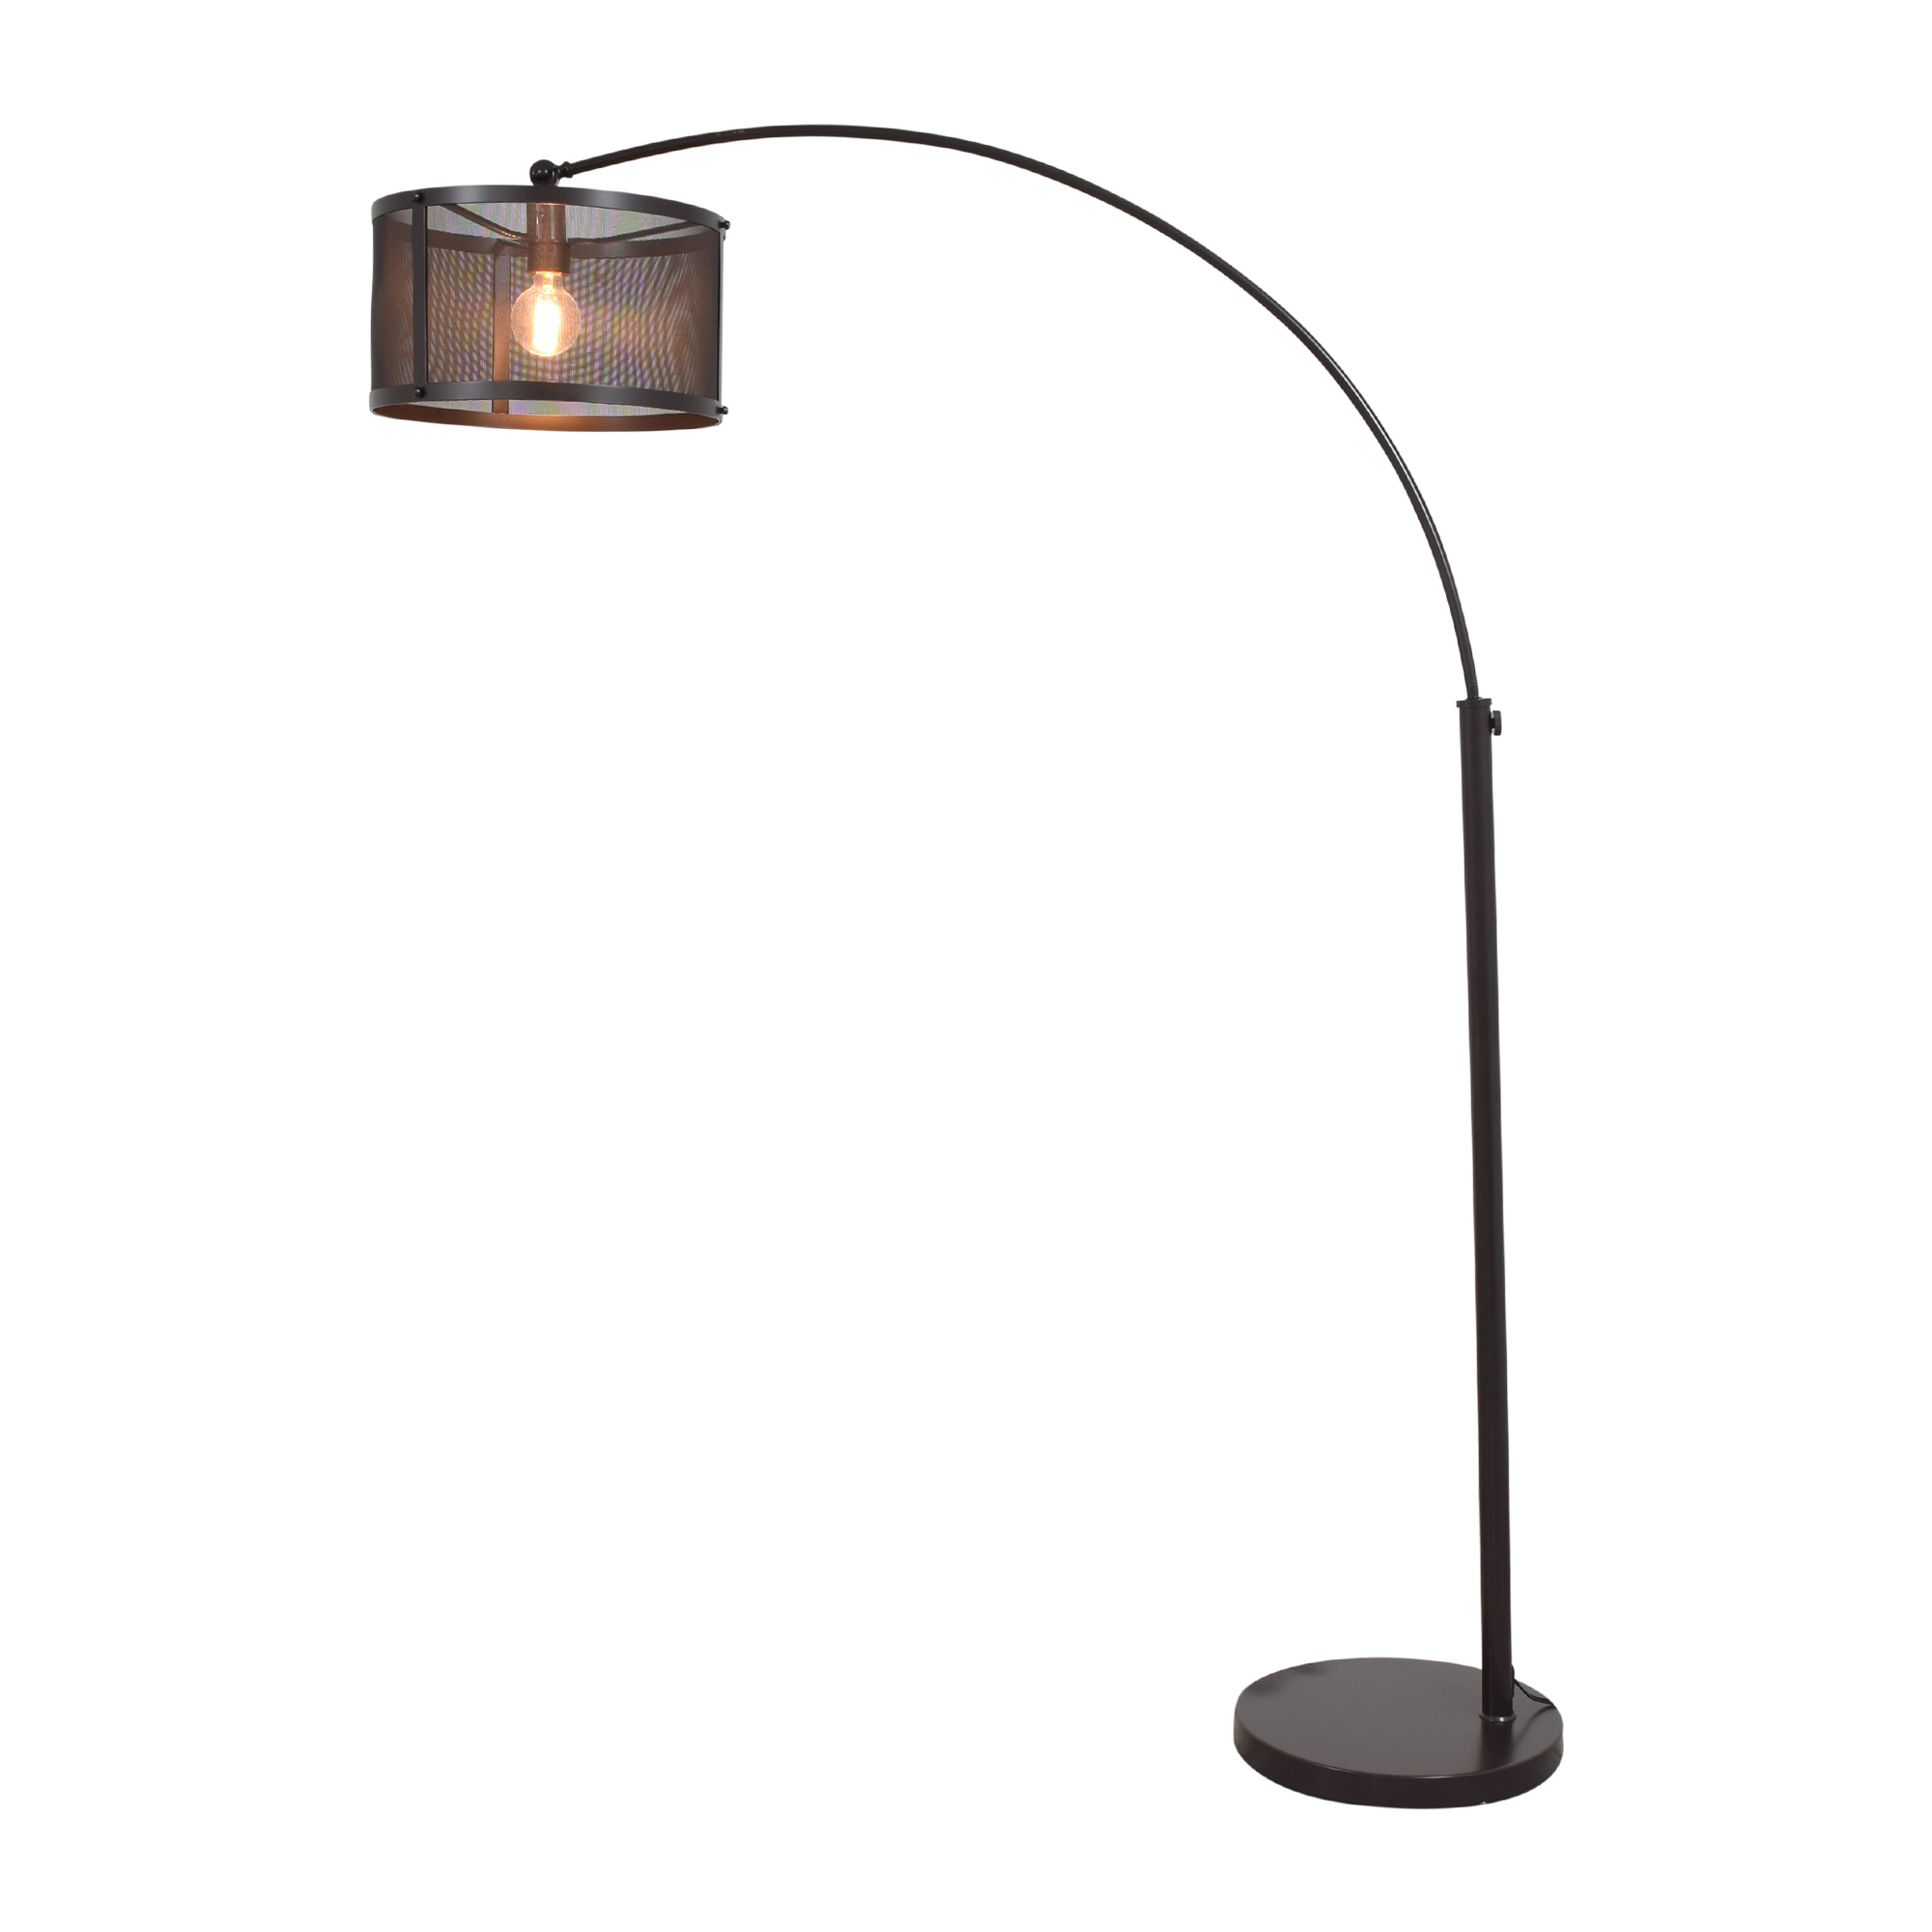 buy Quoizel Overarching Floor Lamp Quoizel Lamps